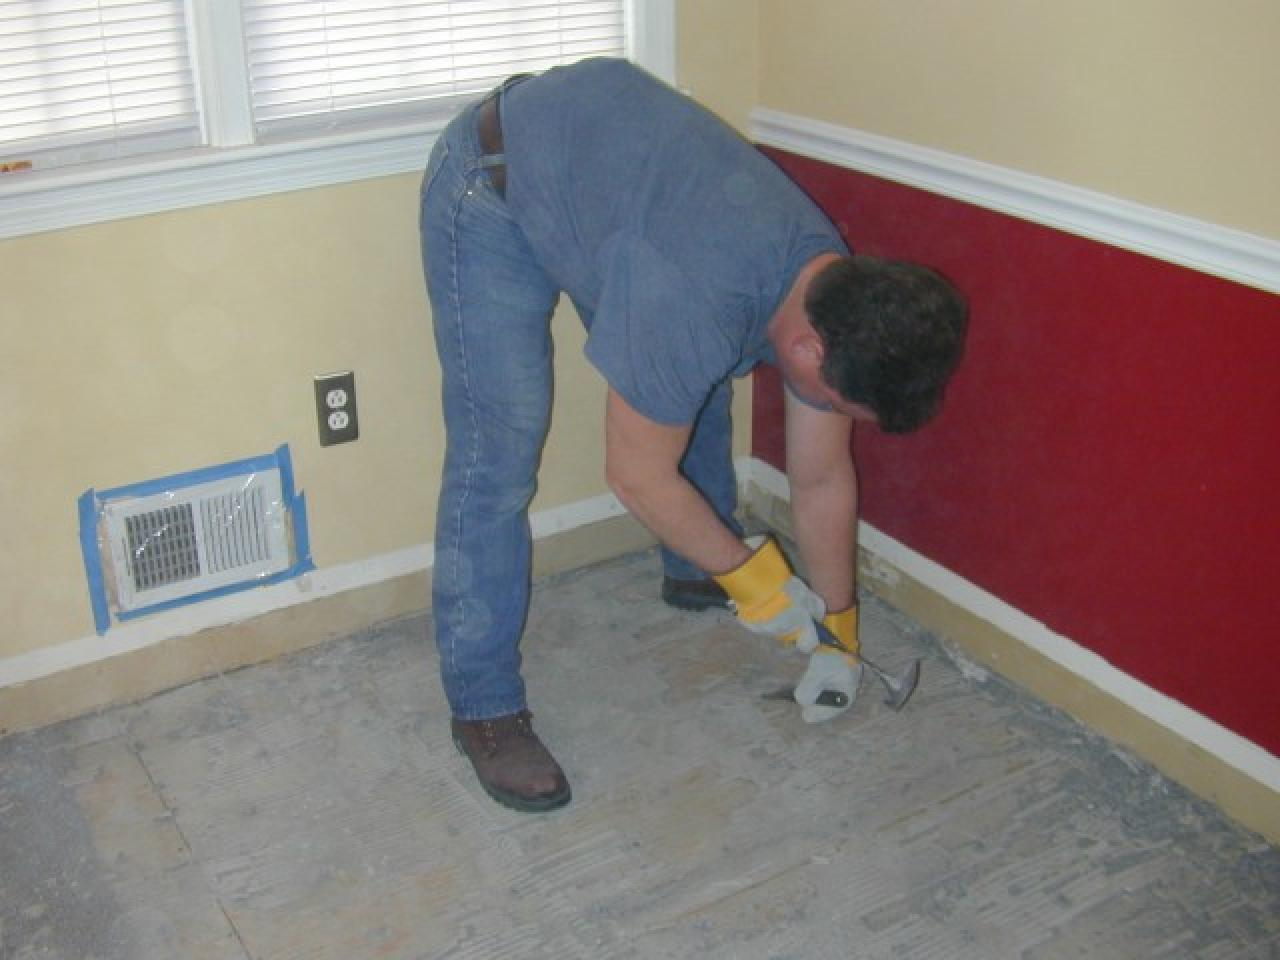 How To Remove Tile Flooring Howtos DIY - Cleaning dust after tile removal